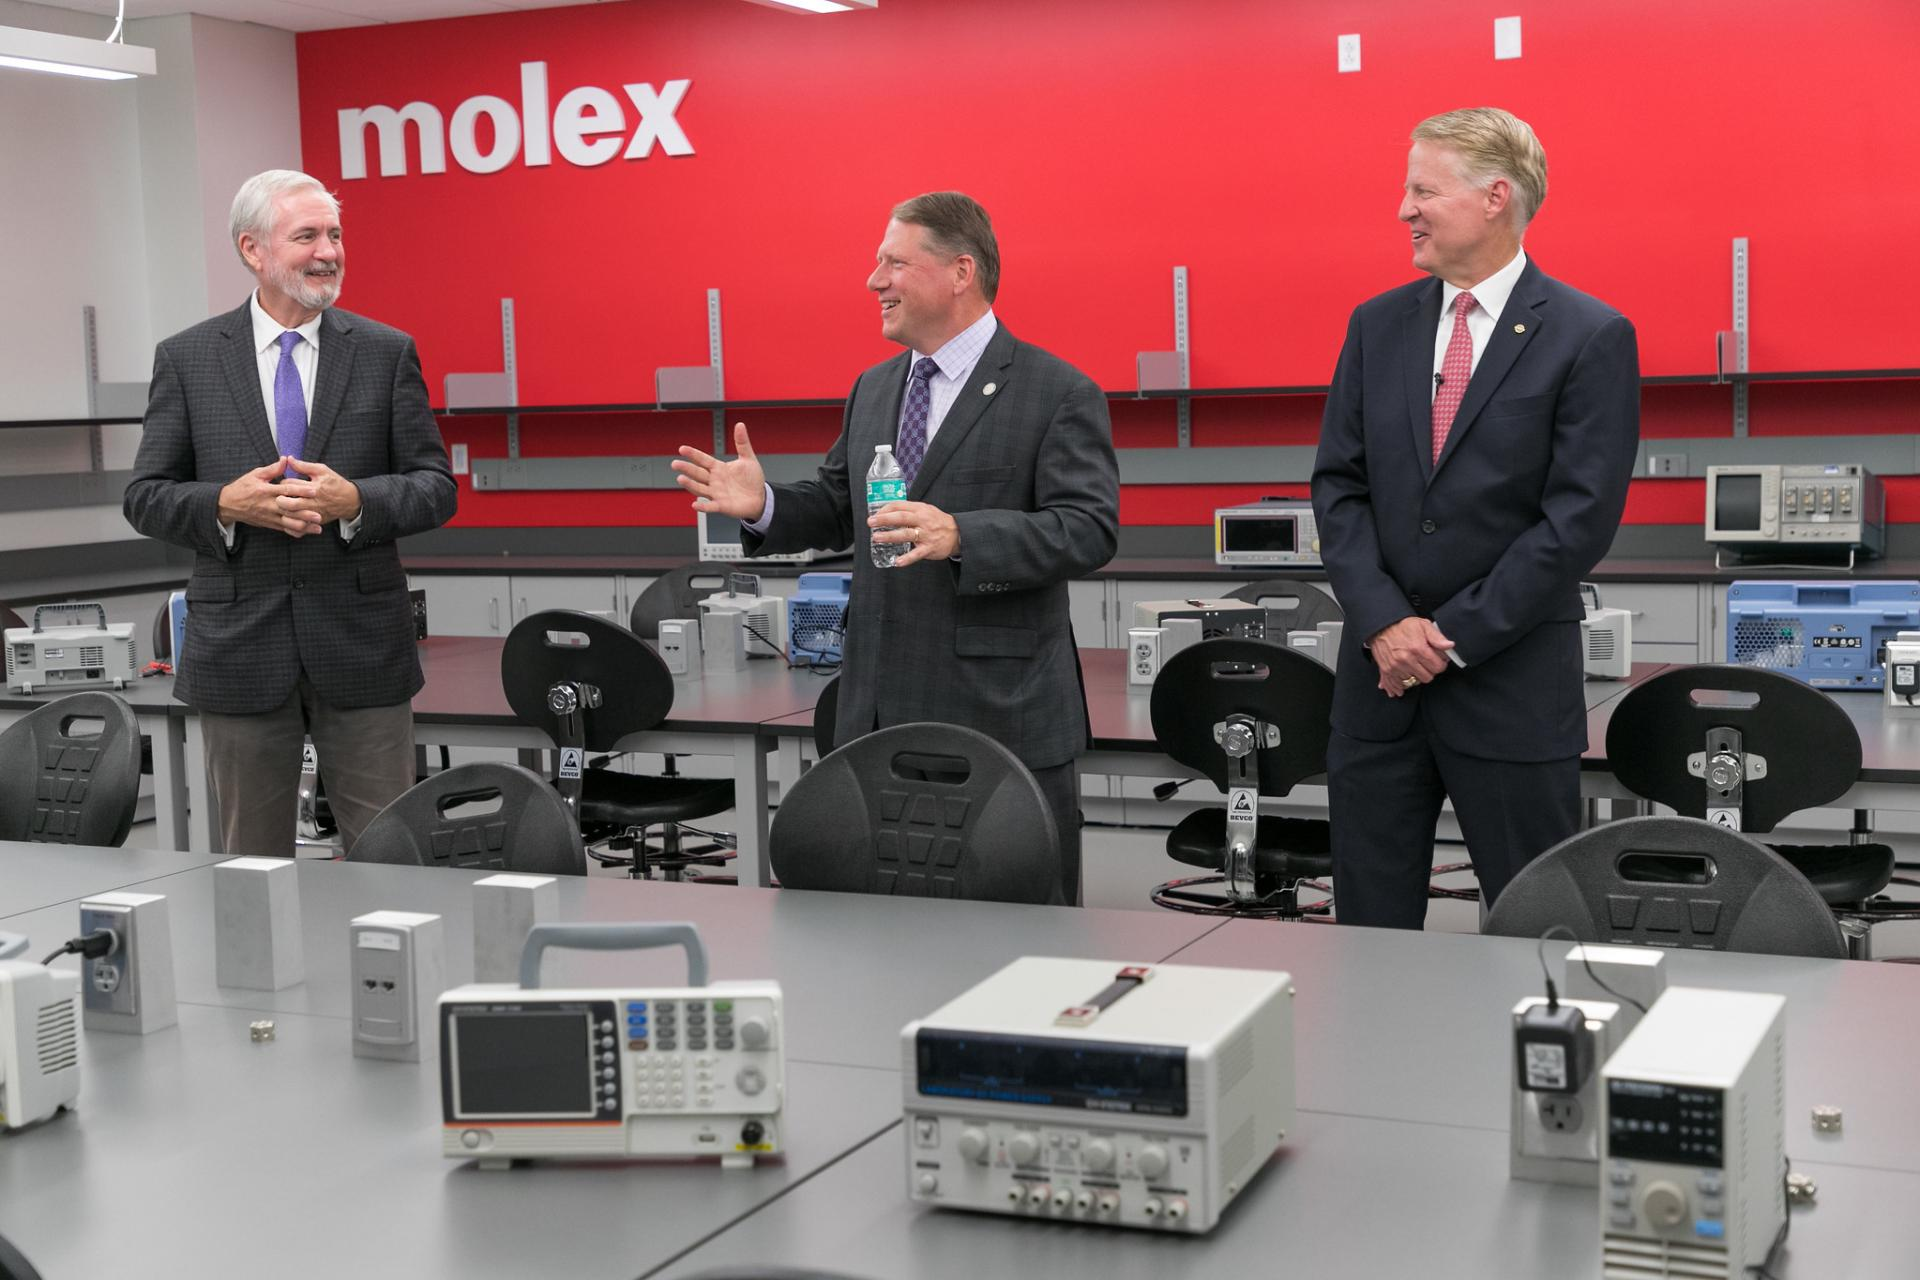 Professor Frank Harwath, President Troy Hammond and Molex CEO Joe Nelligan at the opening of the Molex Lab at North Central College.